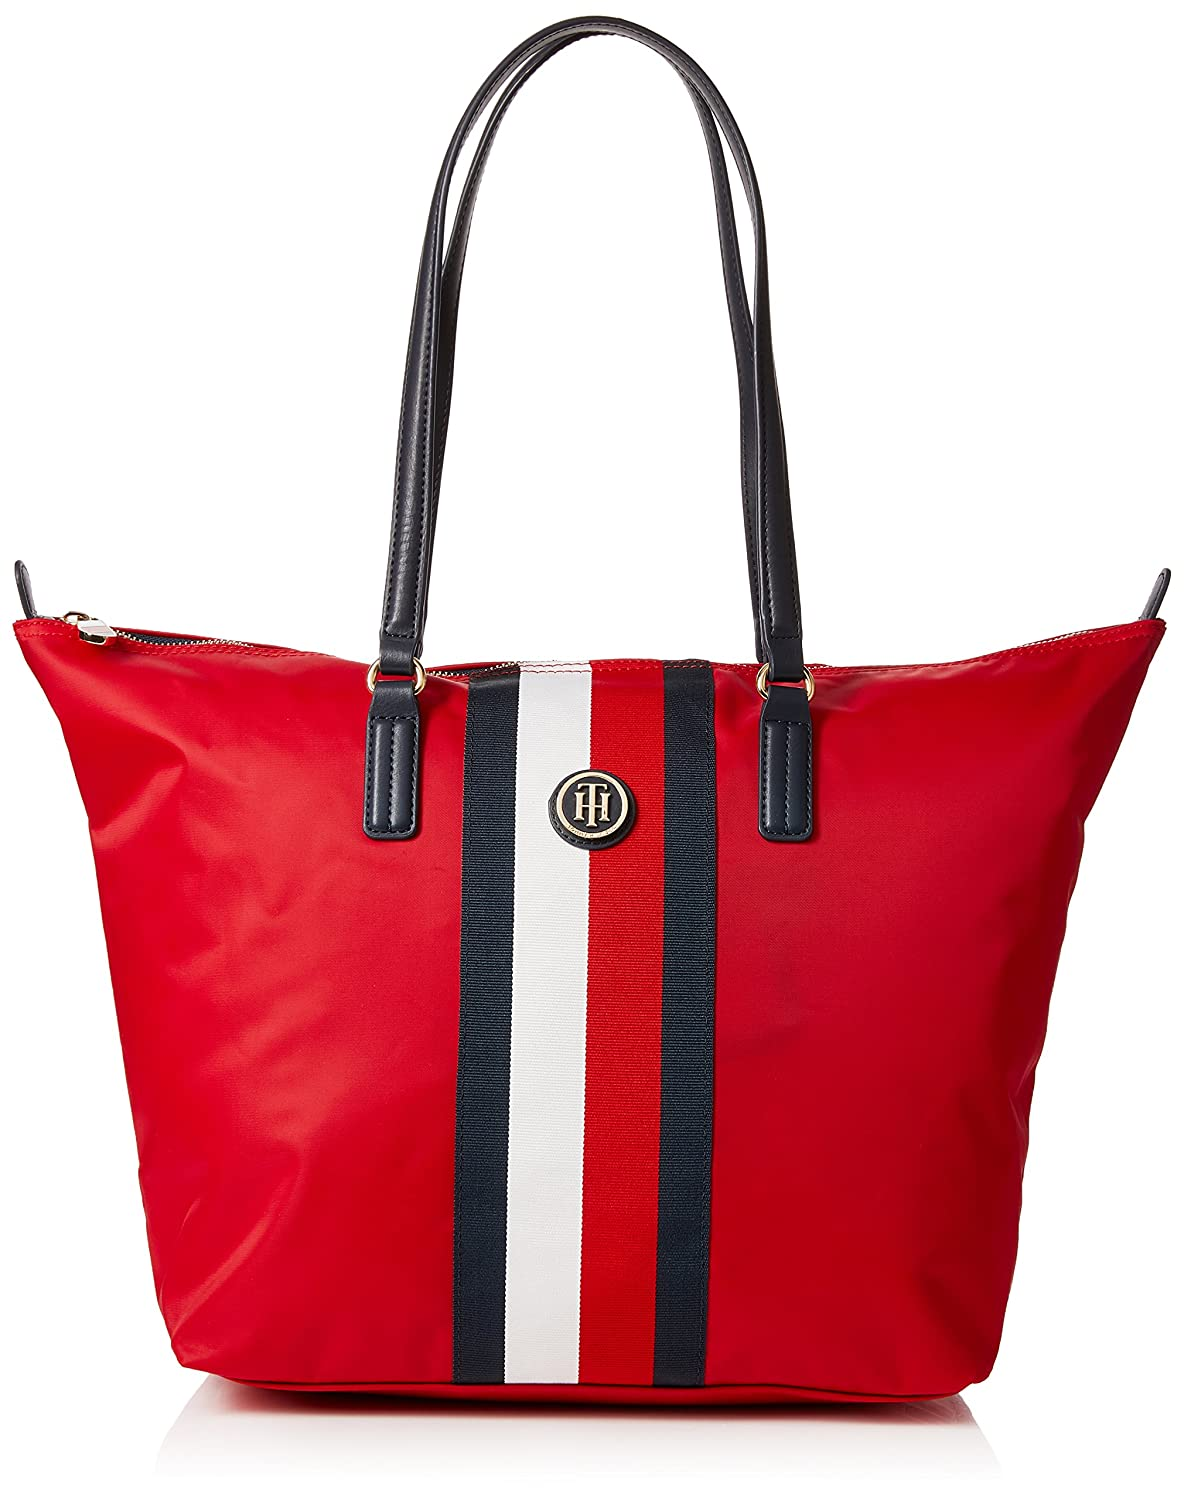 Tommy Hilfiger Poppy Tote Corp Stripe, Cabas femme, Rouge (Red/Core Stripe), 14x32x47 cm (B x H T) AW0AW05795